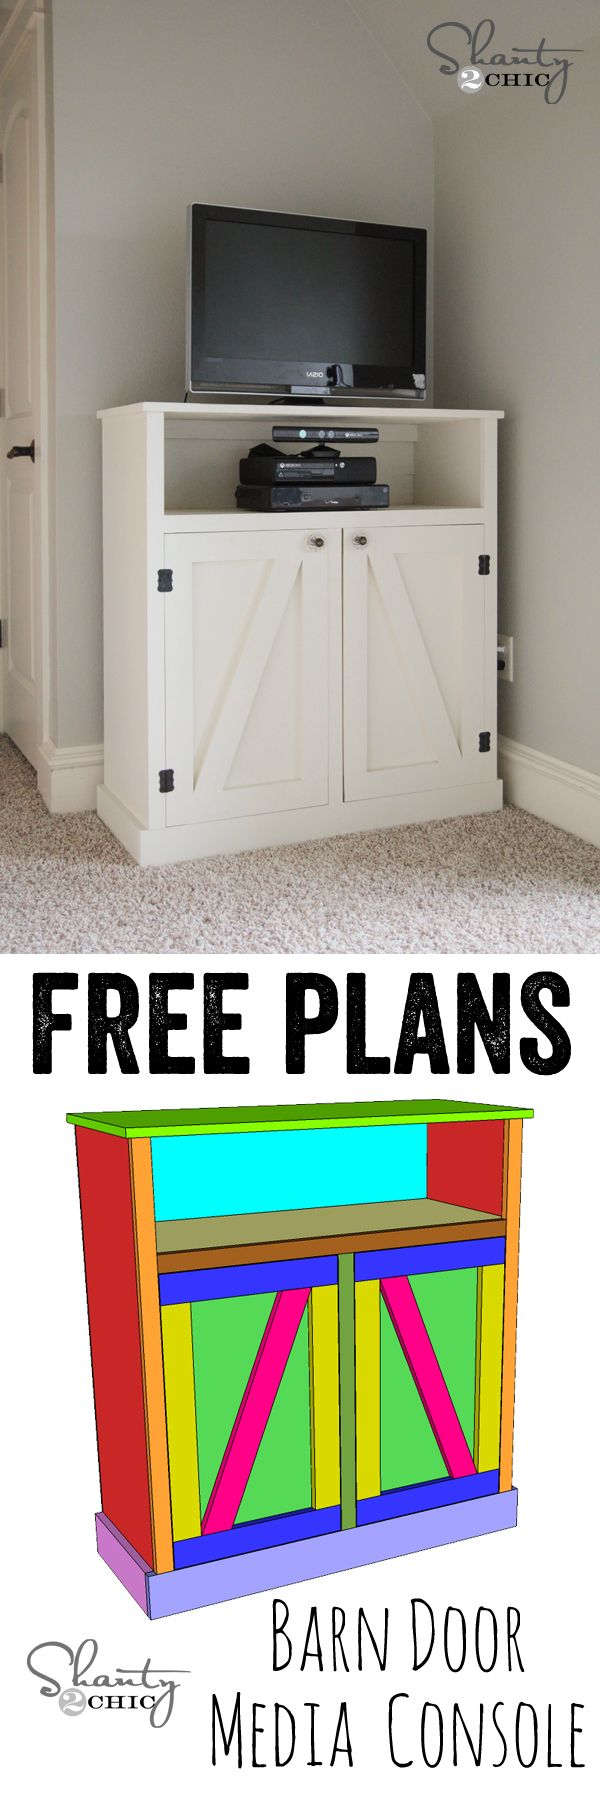 Free DIY Furniture Project Plan: Learn How to Build a Barn Door Media Console